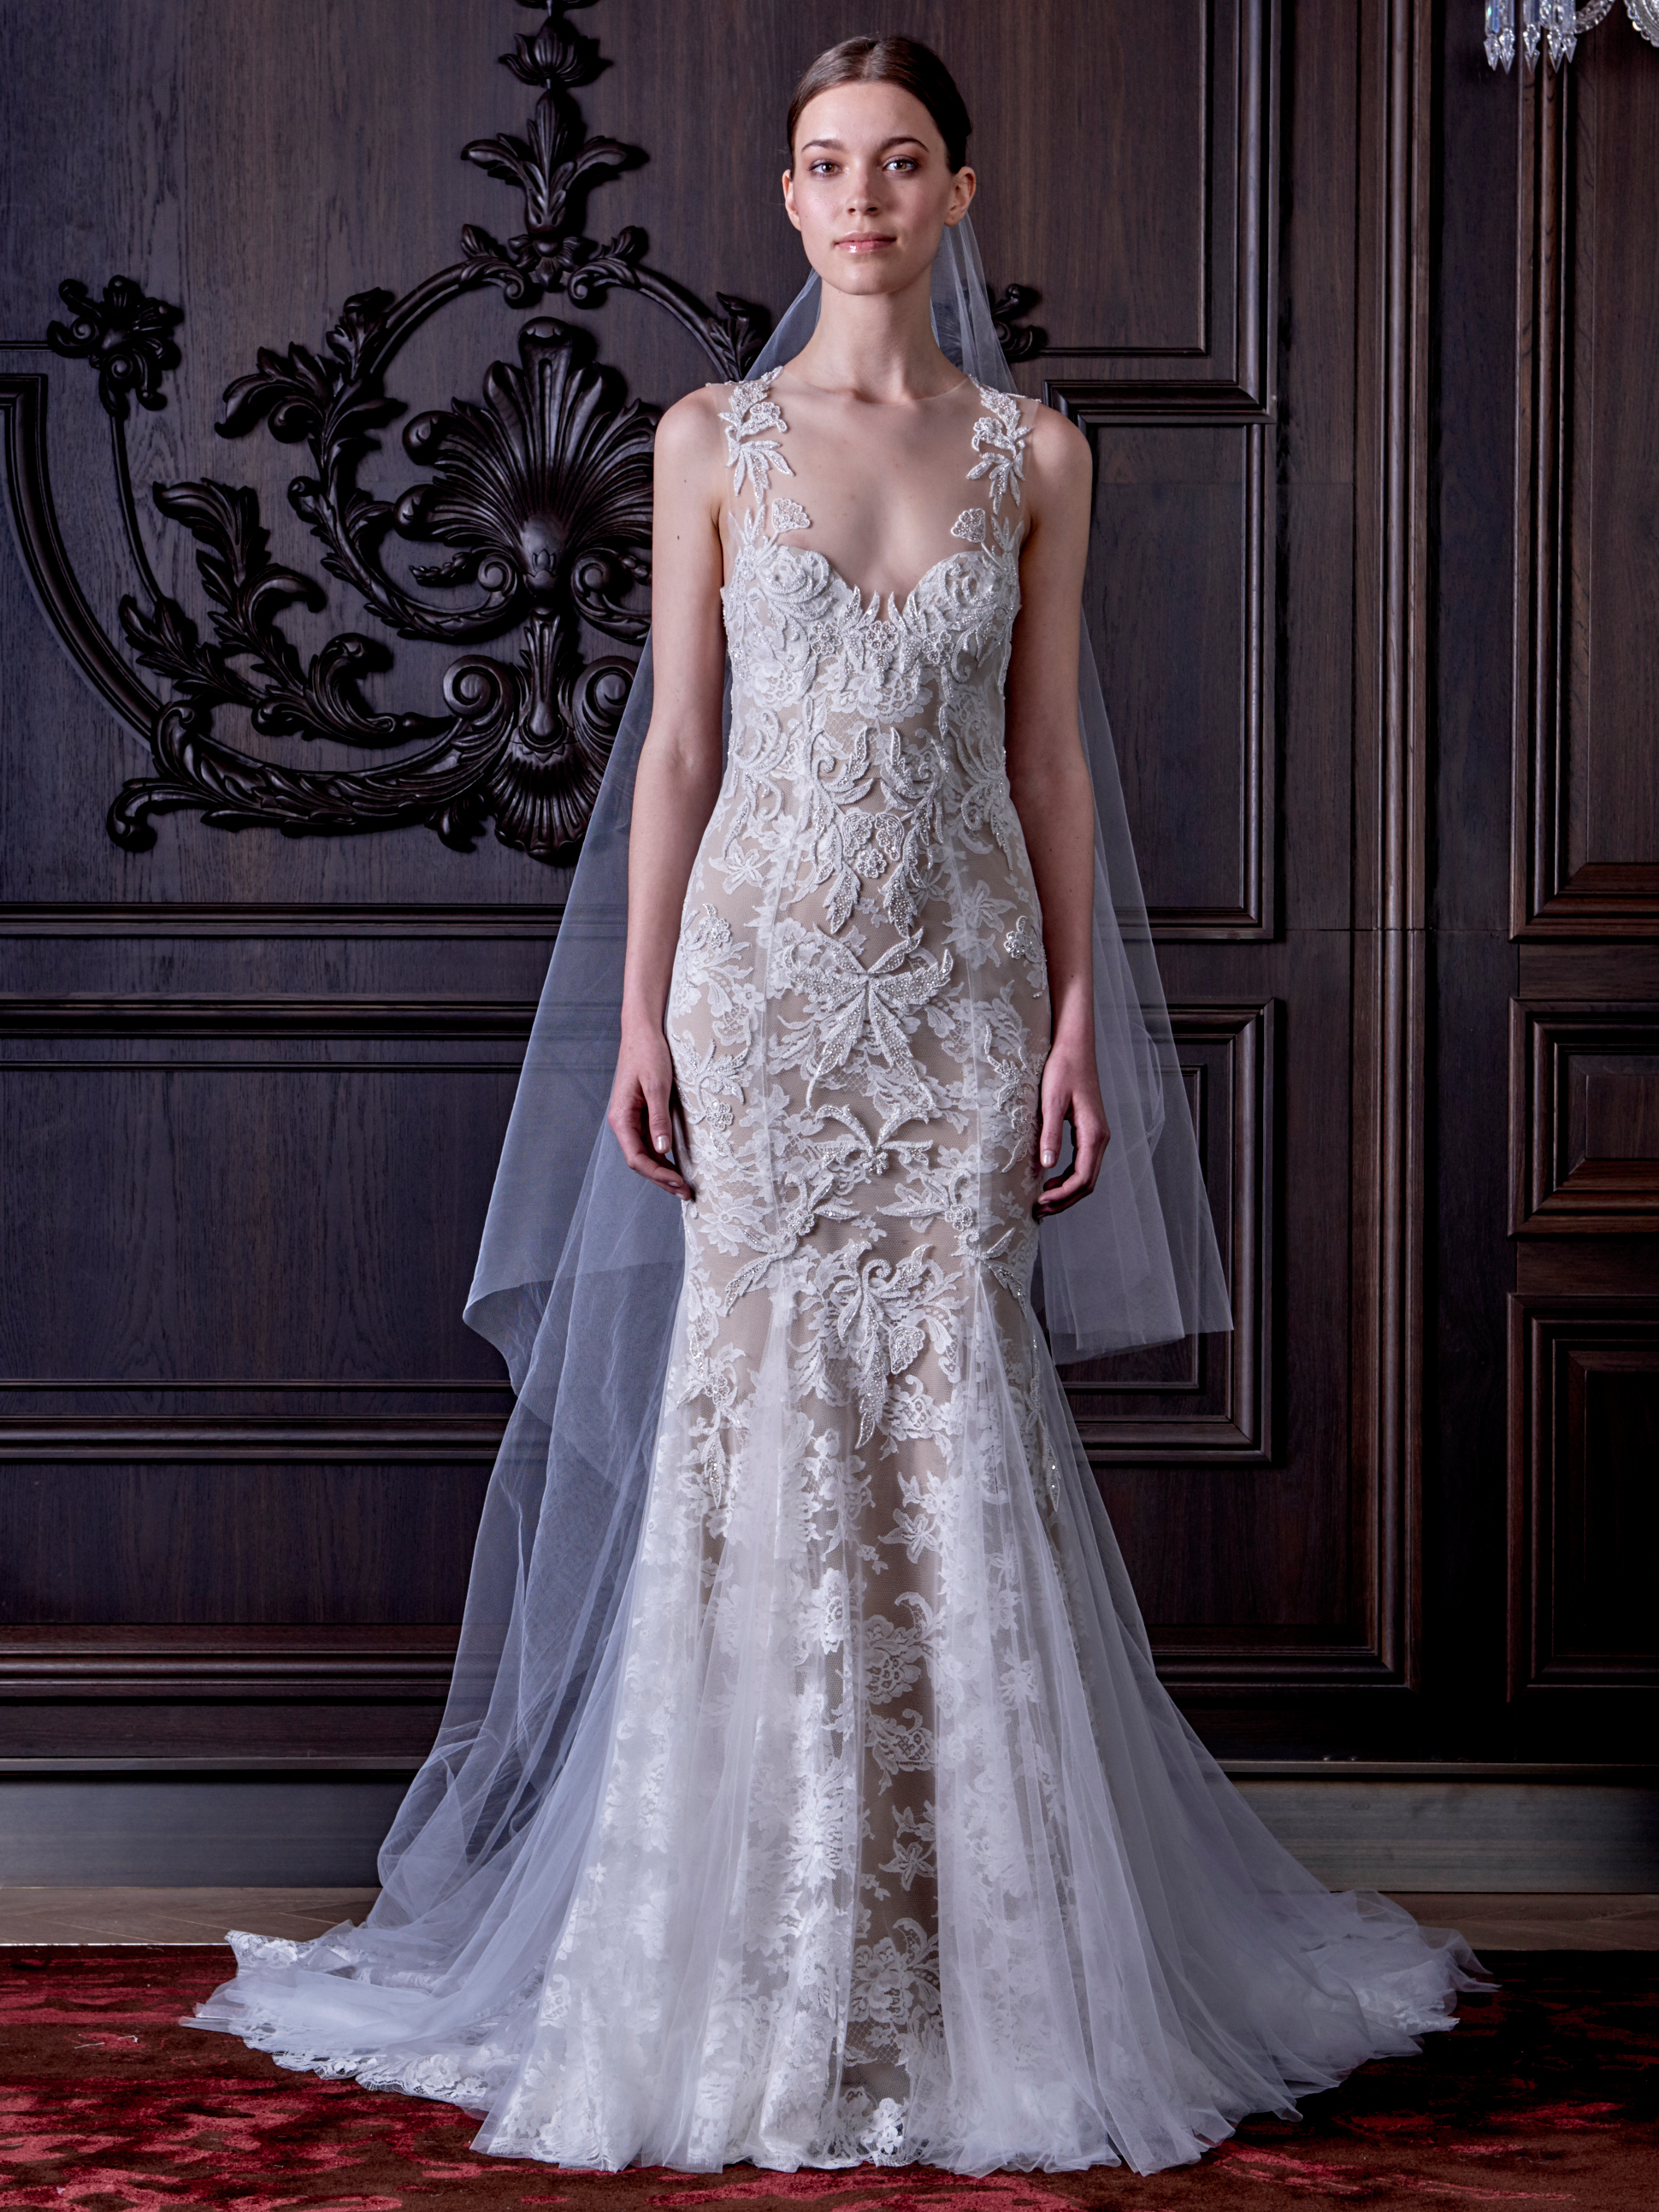 Monique Lhuillier s New Wedding Dress Collection Is Both